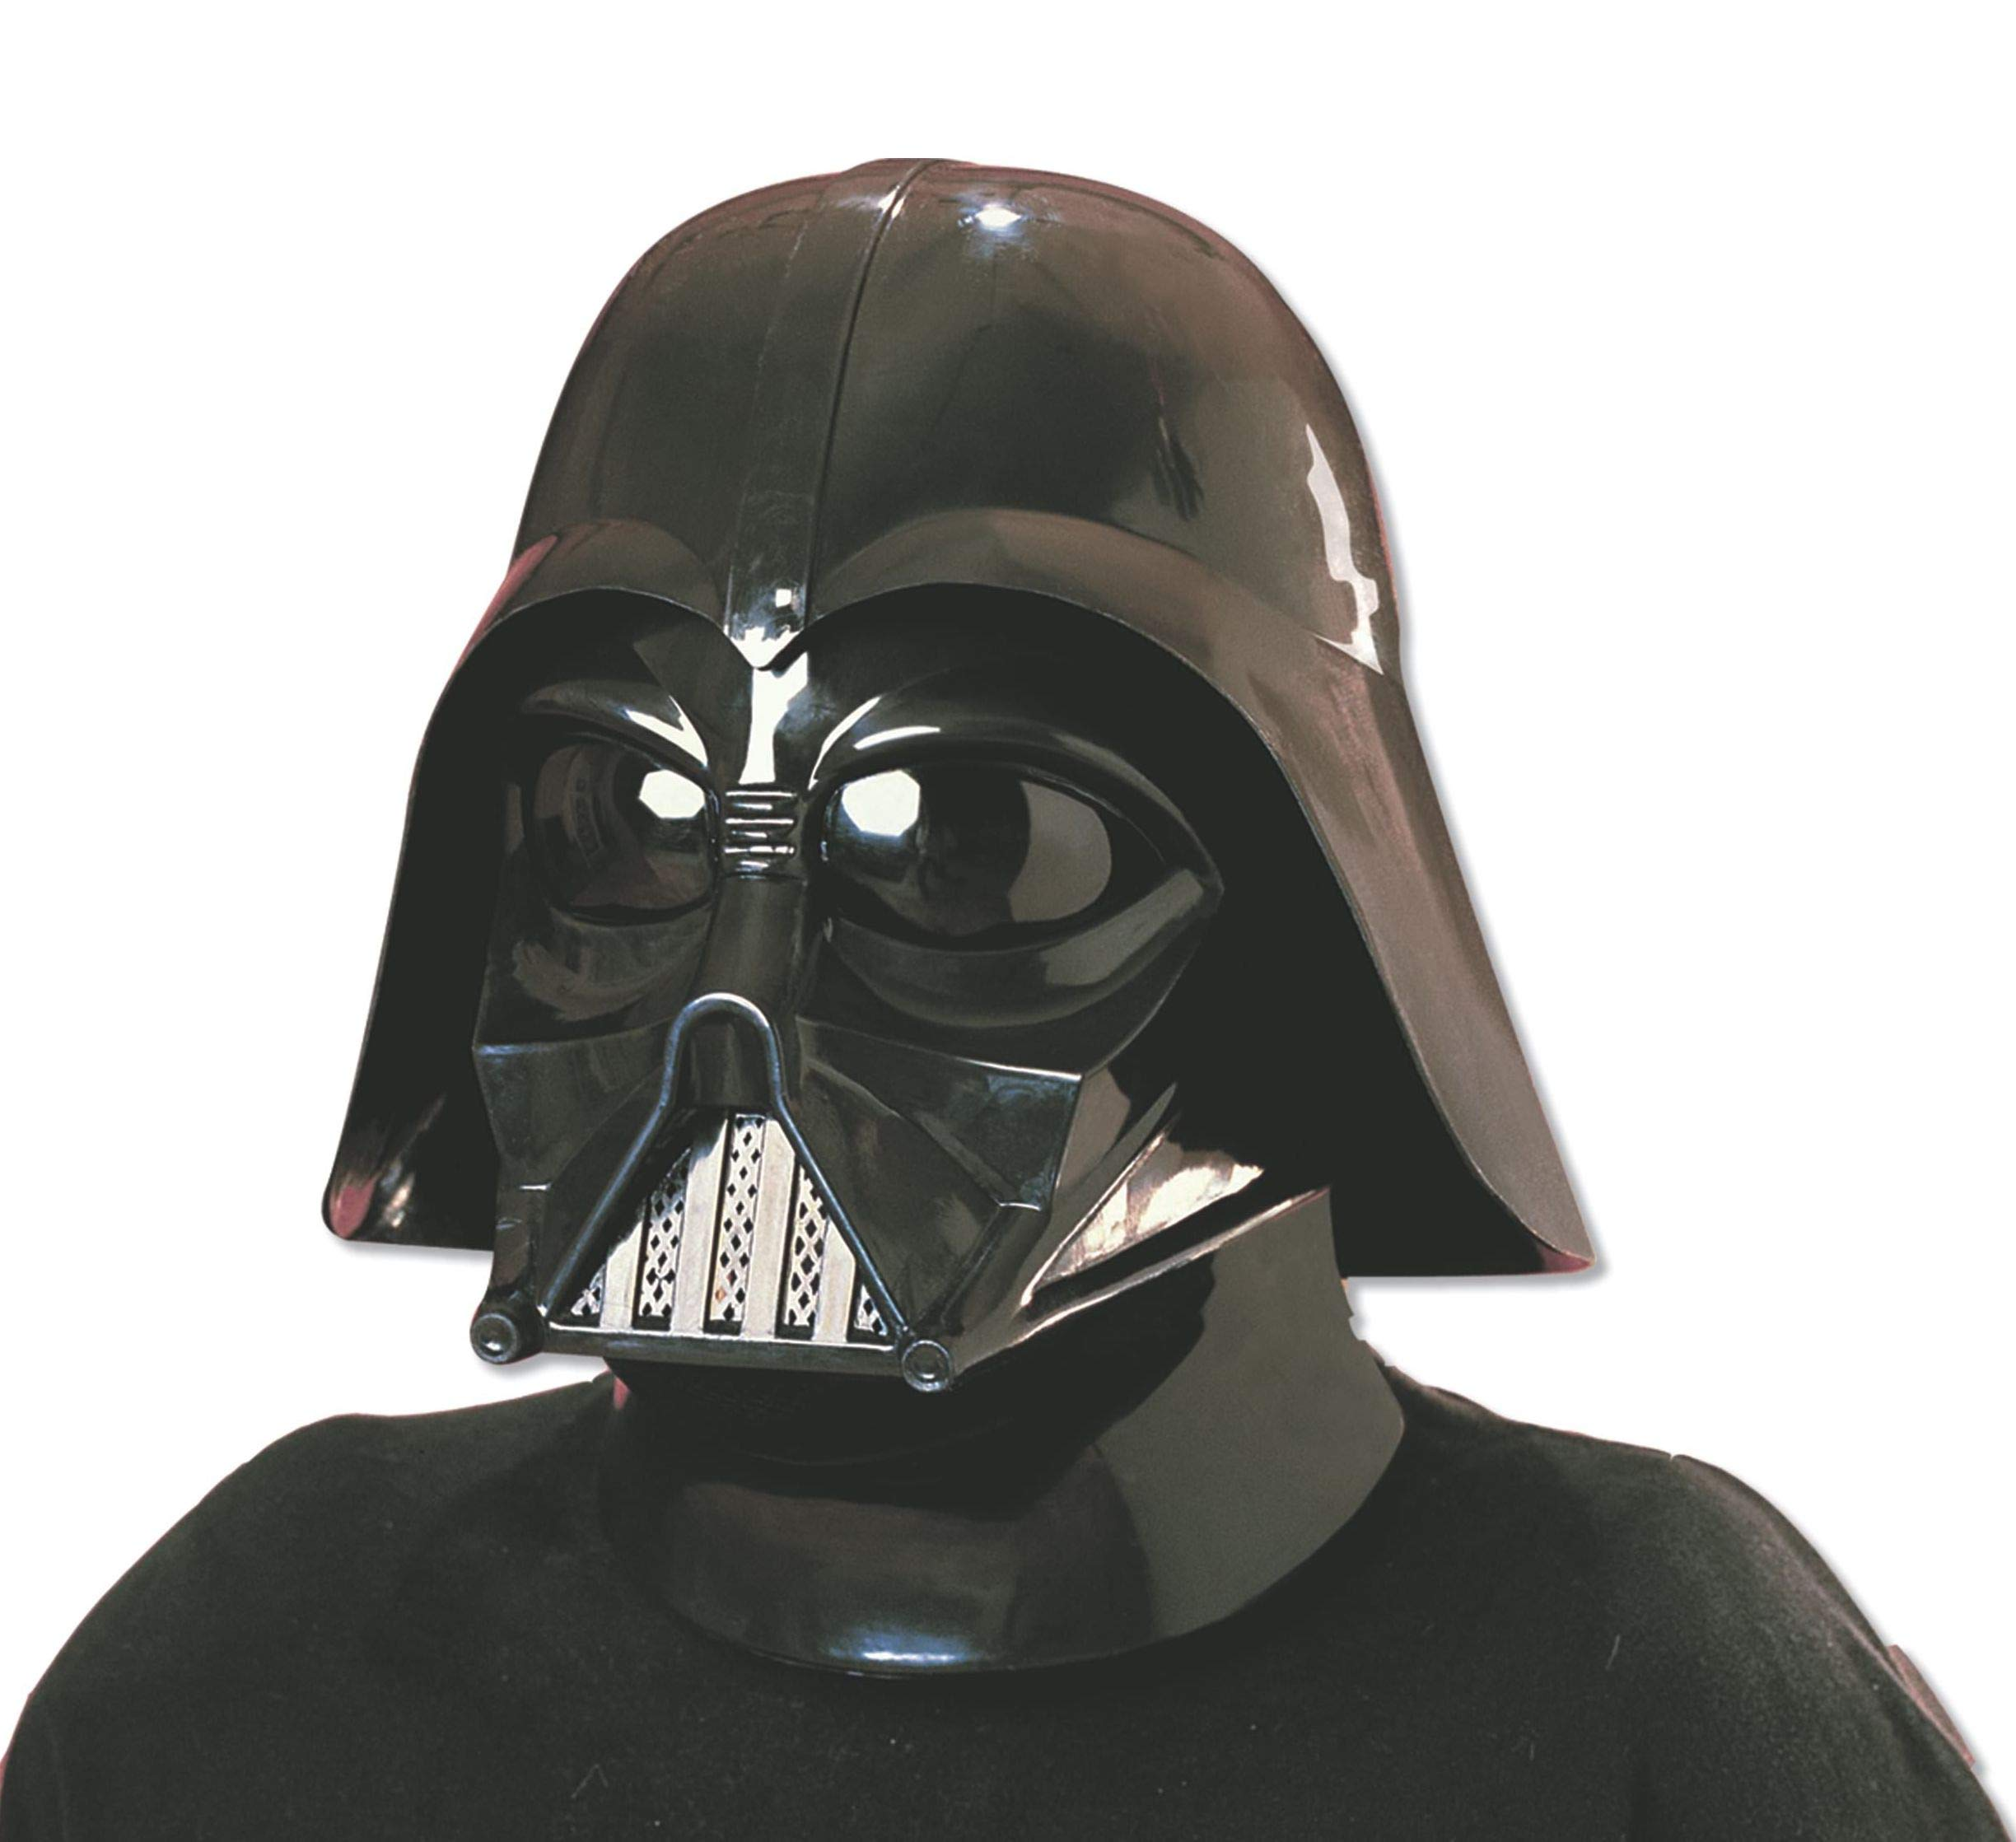 Star Wars Darth Vader Deluxe Adult Full Face Mask, Black, One Size product image